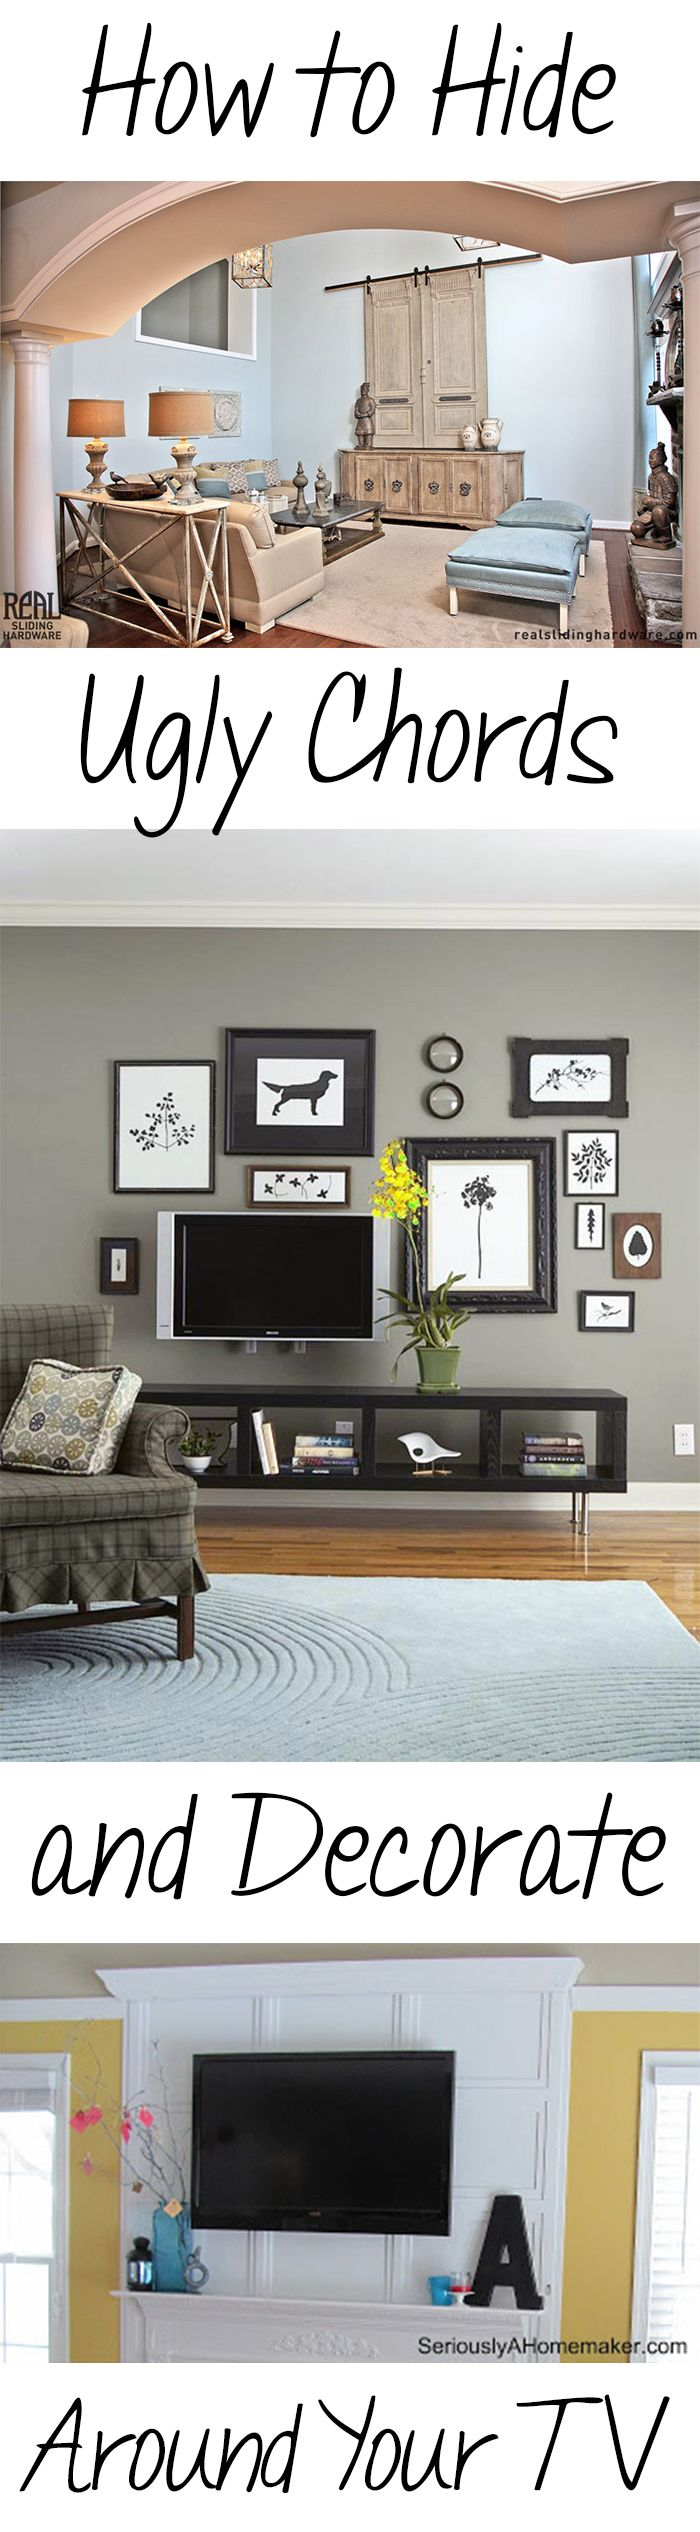 How to Hide Ugly Chords and Decorate Around Your TV | Home Decor ...